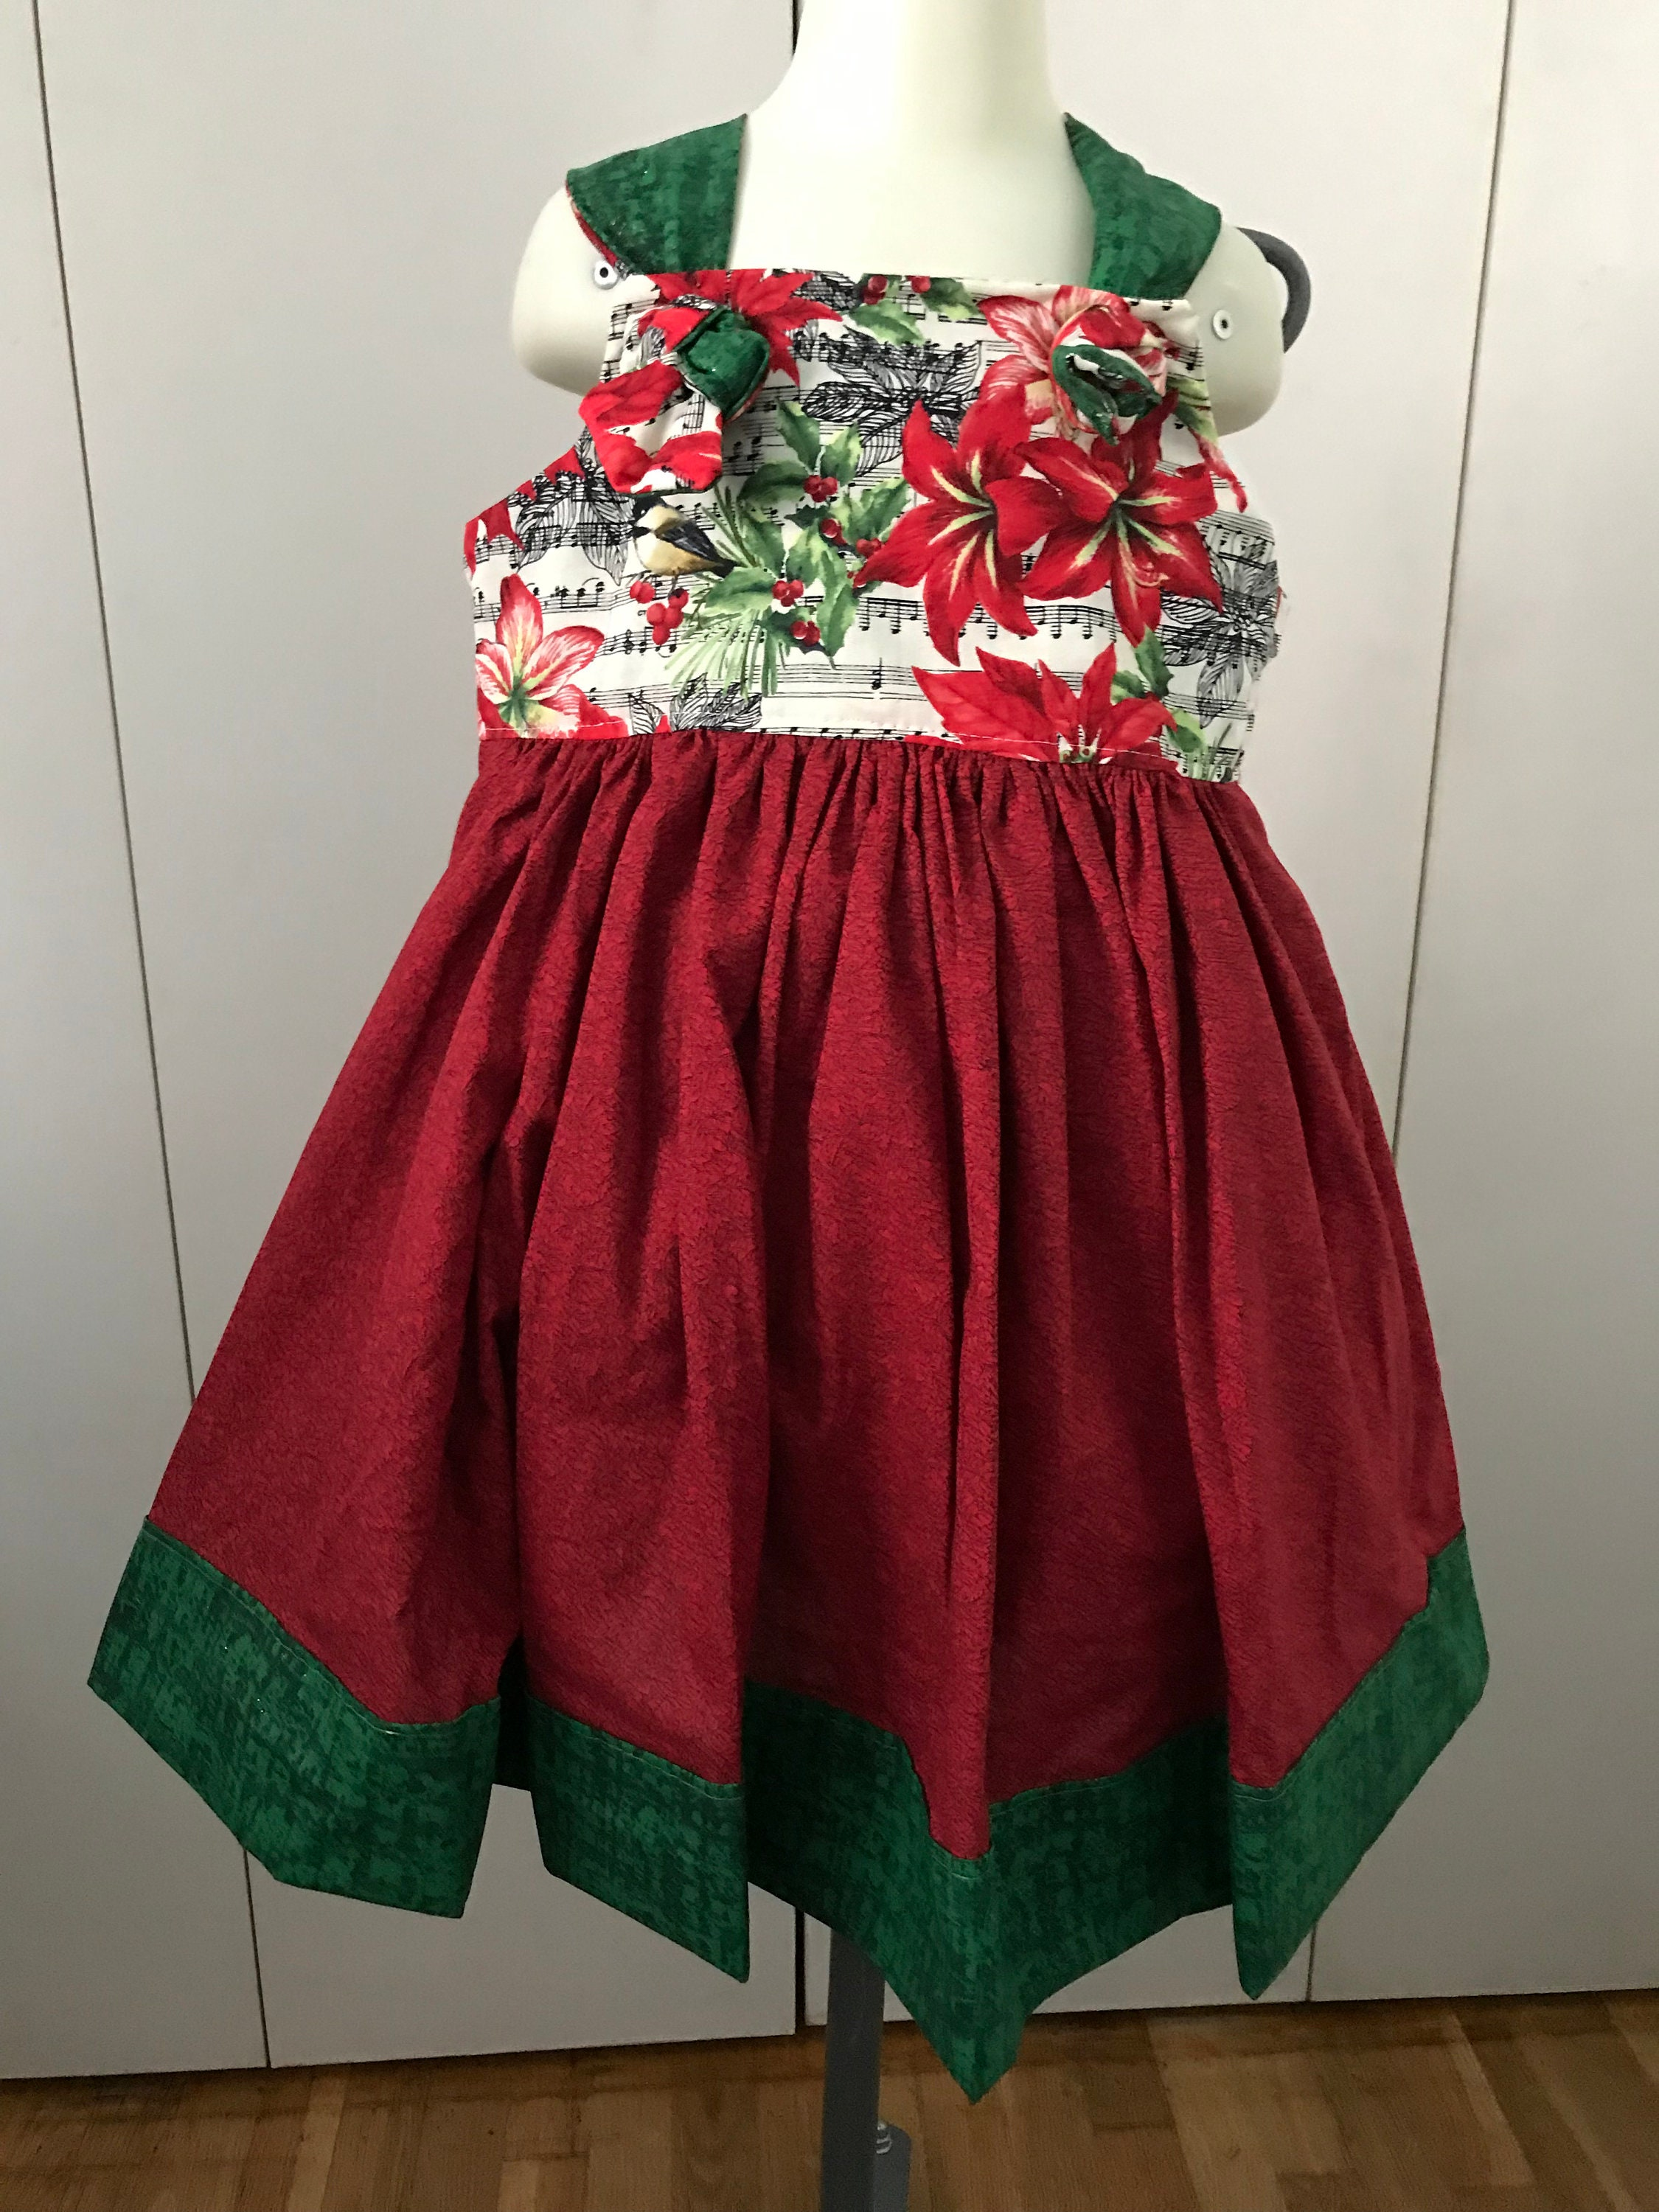 7490e2a27 Girls Christmas Poinsettia Boutique Dress sizes 12 month-size | Etsy